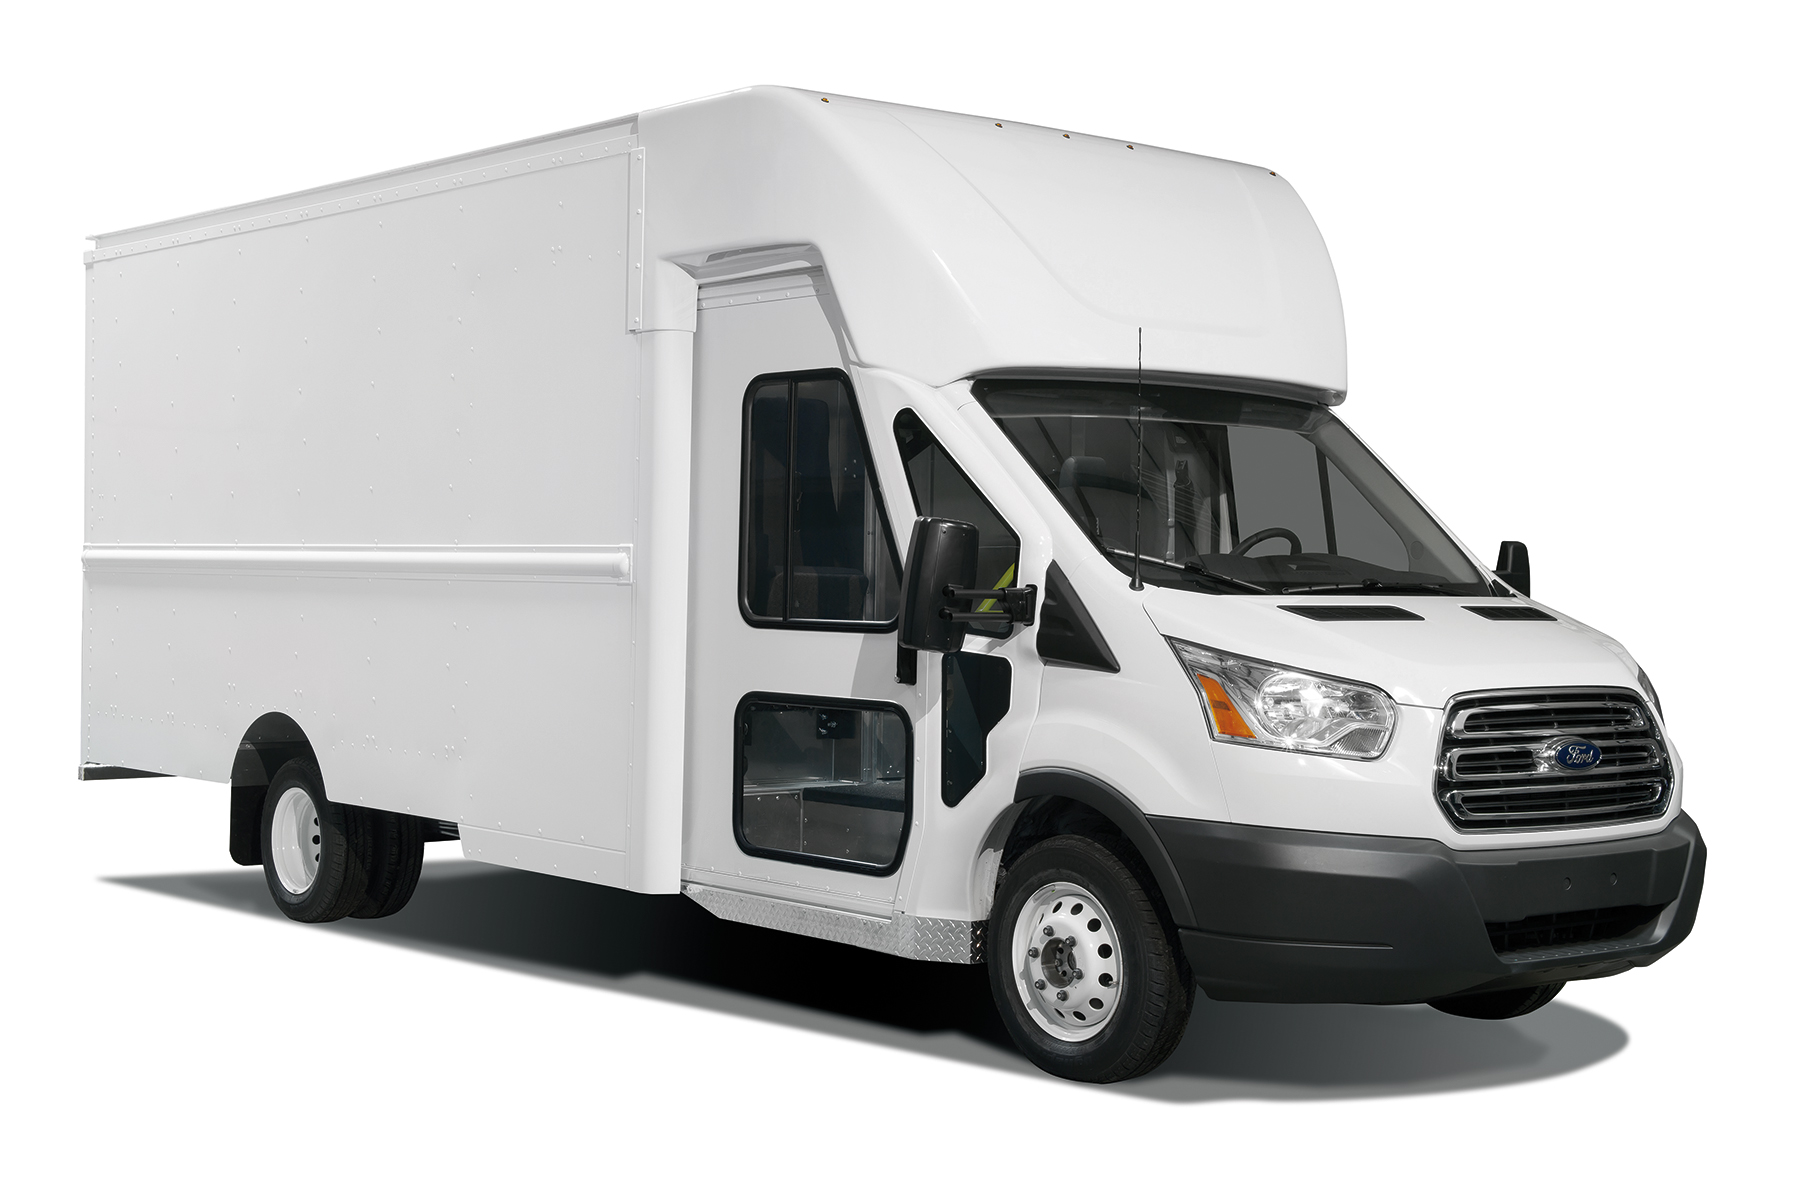 Ford Transit Cutaway Van >> Expedited Pick-Up and Delivery with the Utilimaster Velocity - Work Truck Direct